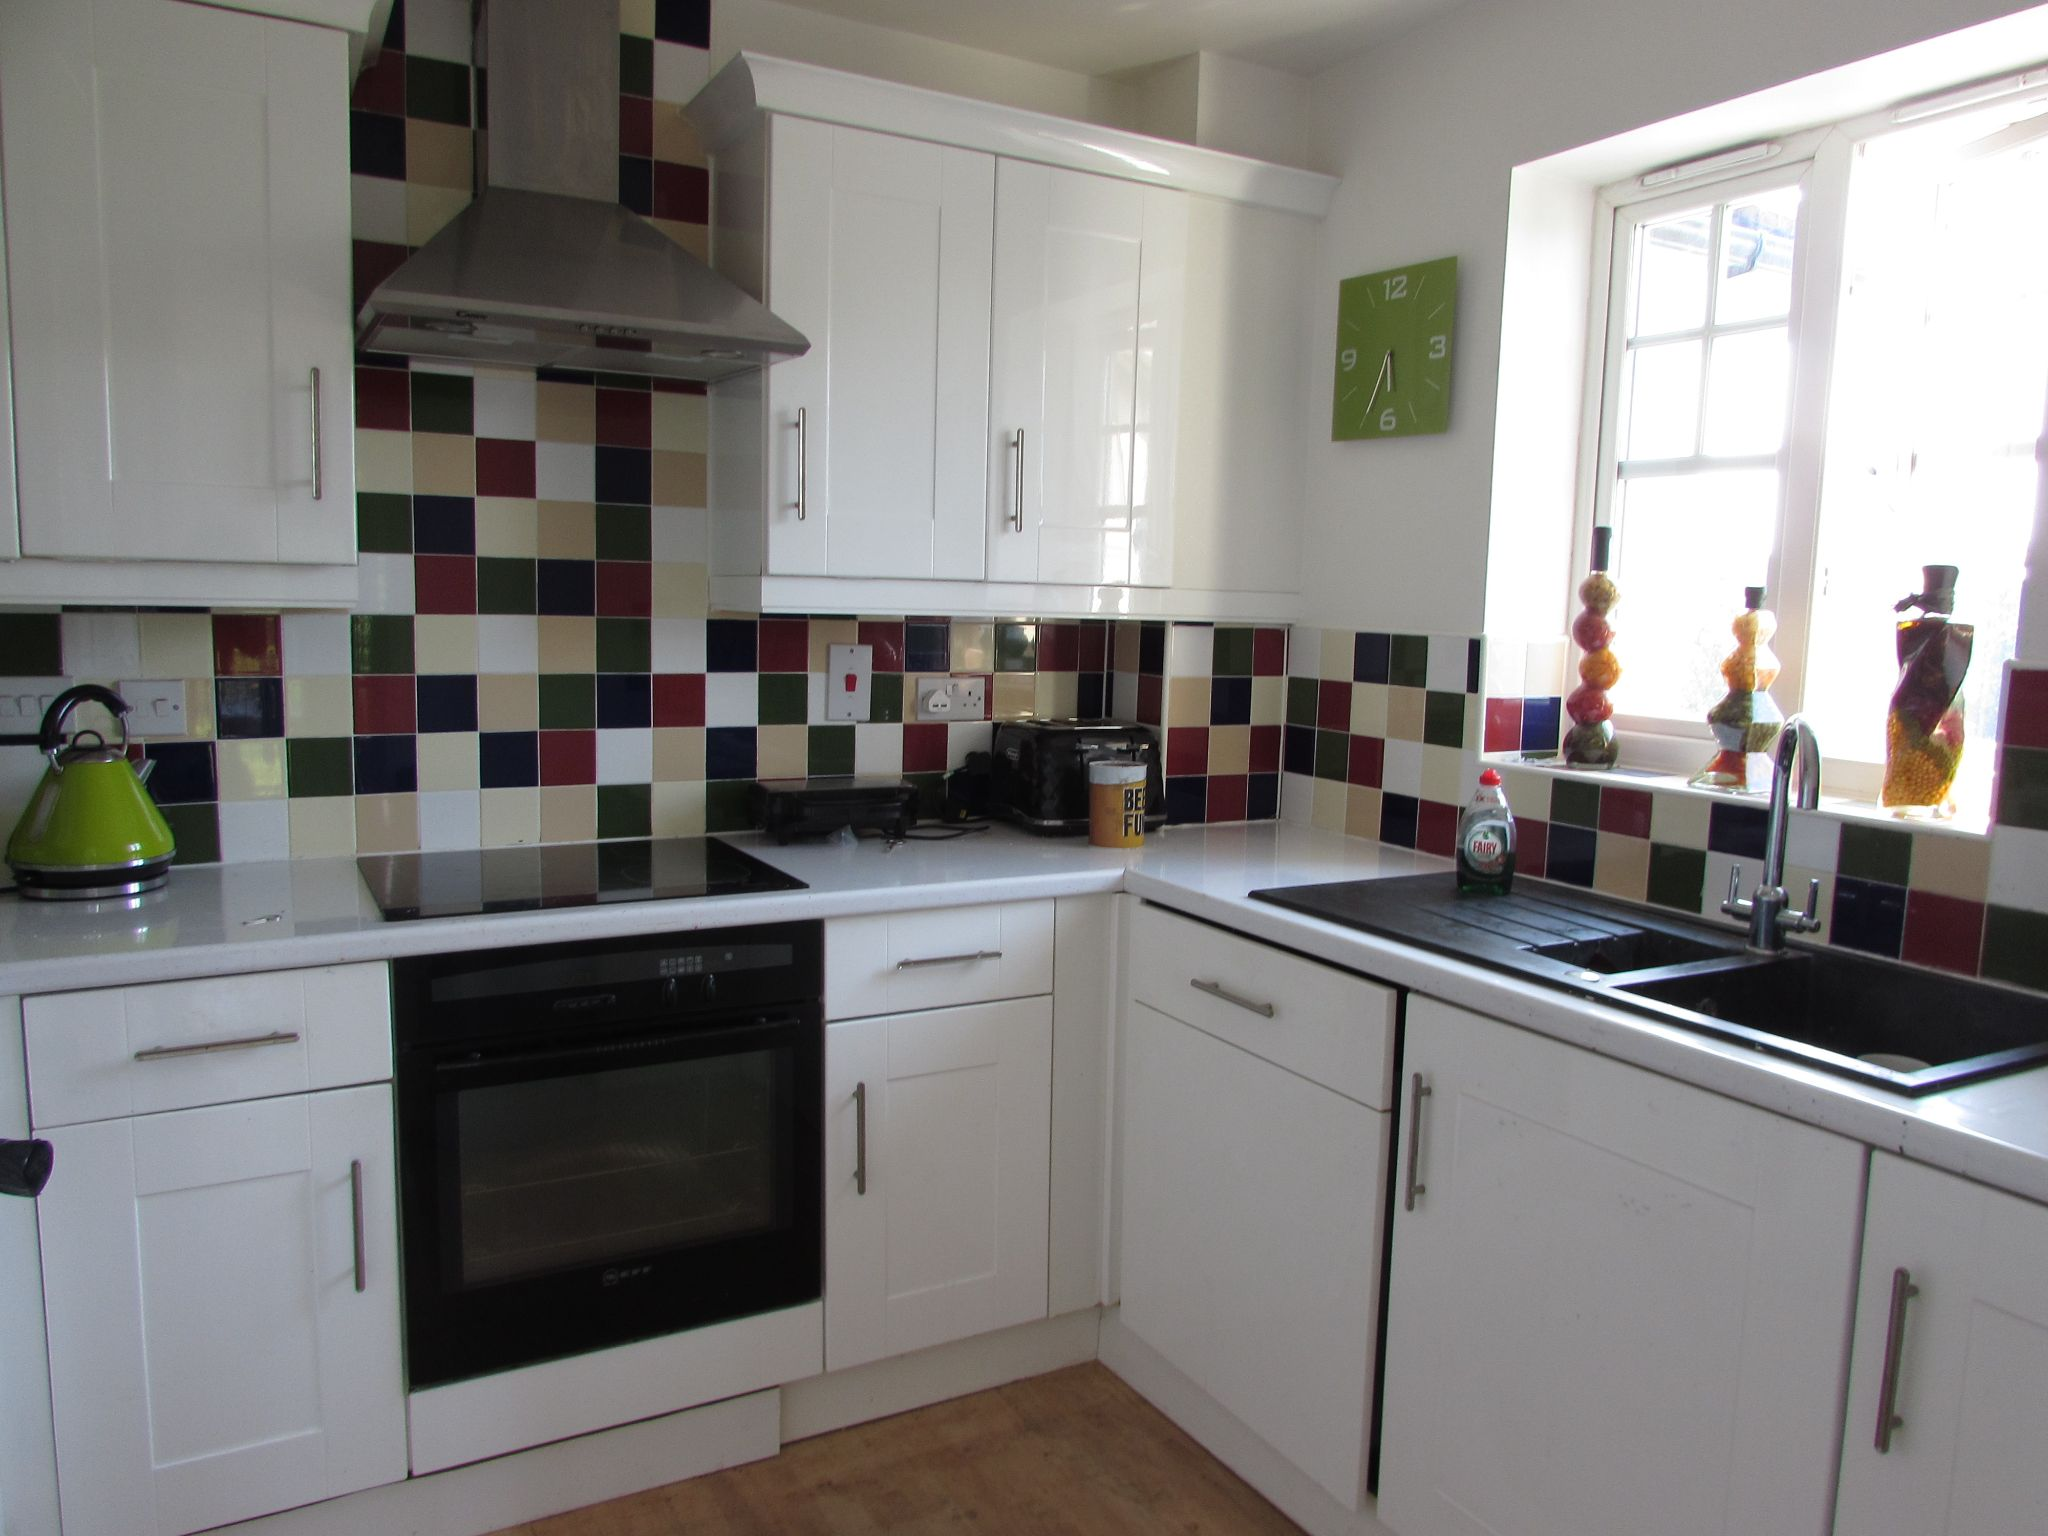 2 Bedroom Penthouse Flat/apartment For Sale - Photograph 4